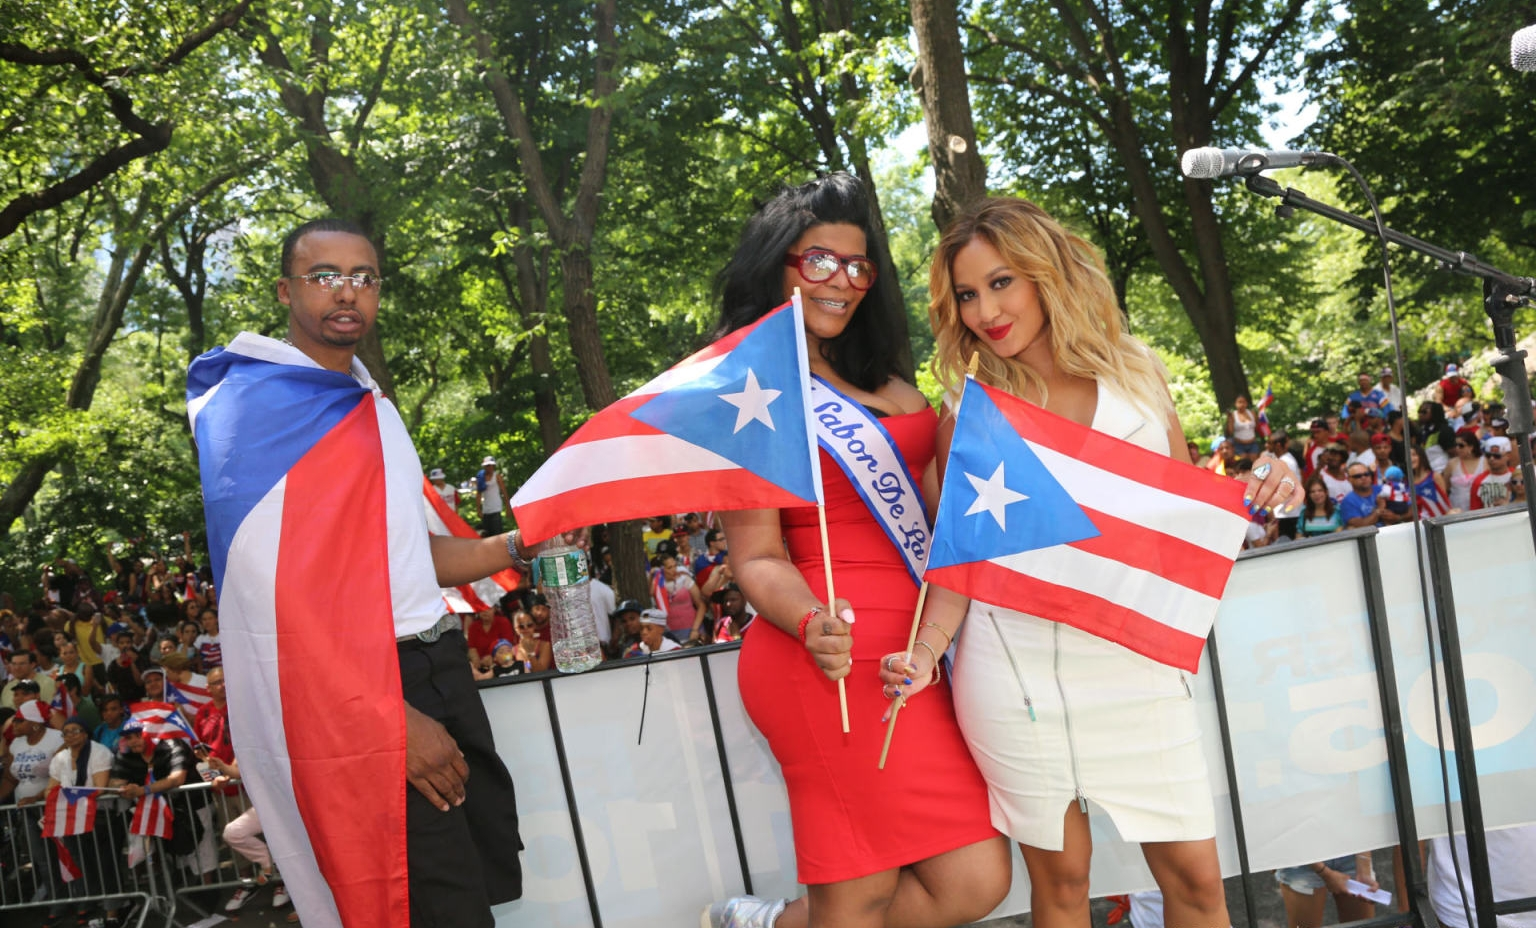 The fat puerto rican girls are not